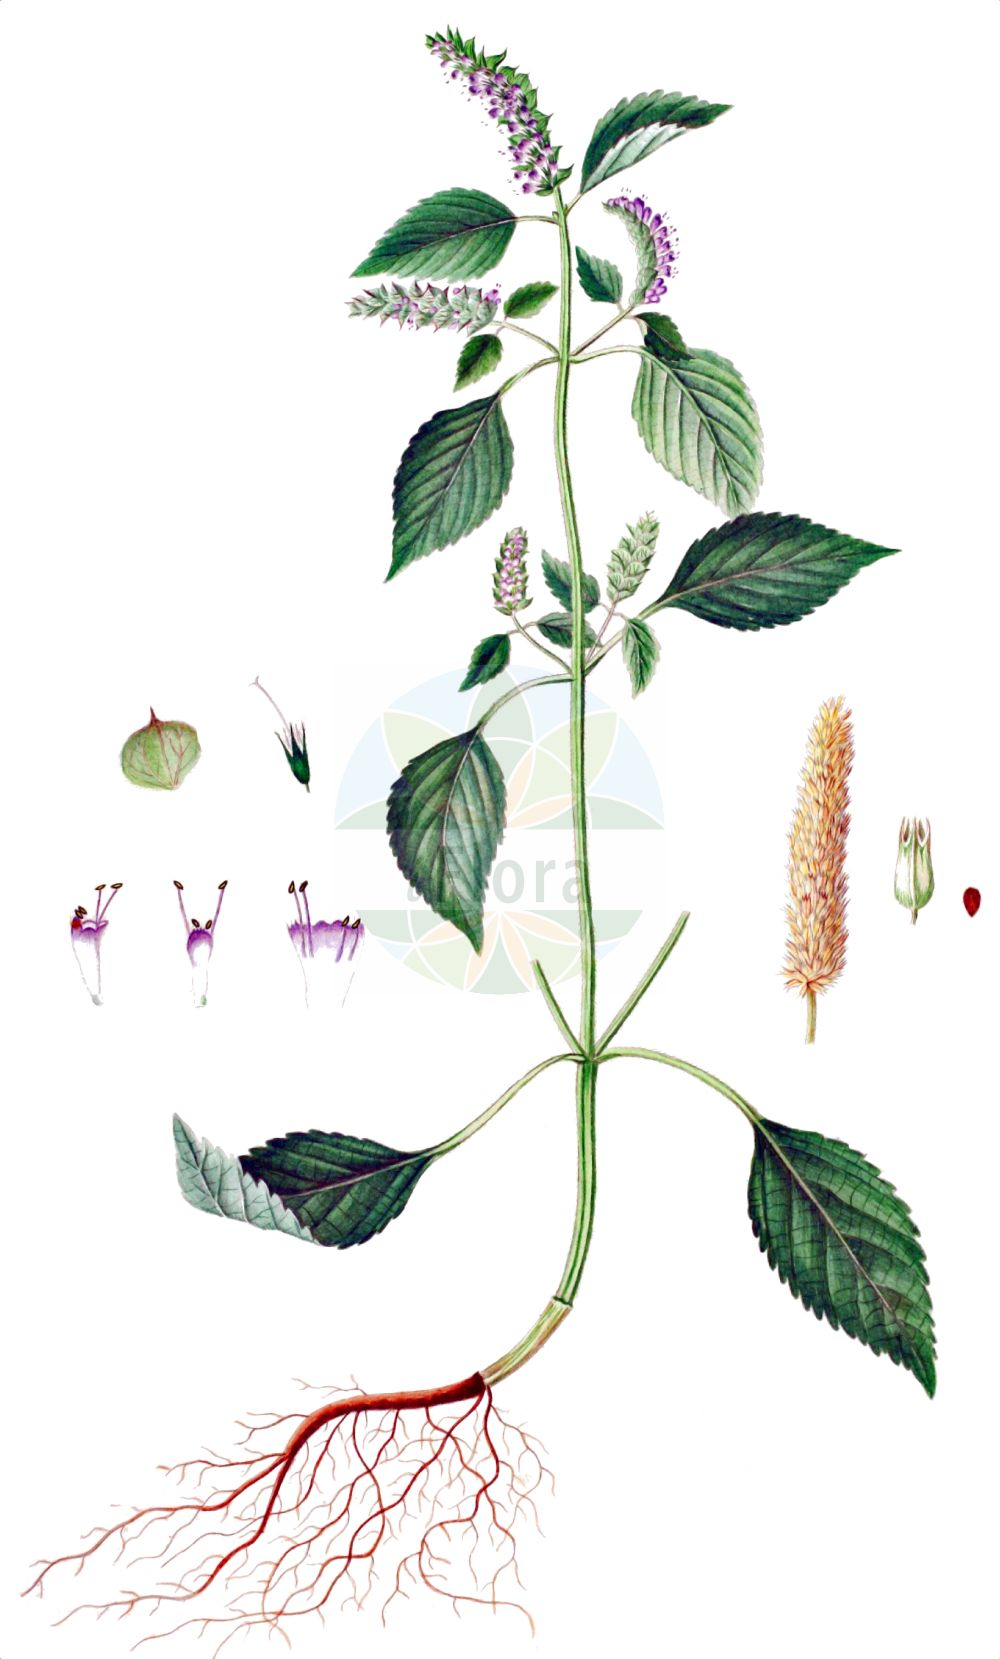 Historische Abbildung von Elsholtzia ciliata. Das Bild zeigt Blatt, Bluete, Frucht und Same. ---- Historical Drawing of Elsholtzia ciliata.The image is showing leaf, flower, fruit and seed.(Elsholtzia ciliata,Elsholtzia ciliata,Elsholtzia cristata,Elsholtzia formosana,Elsholtzia interrupta,Elsholtzia minima,Elsholtzia patrinii,Elsholtzia pseudocristata,Hyssopus bracteatus,Hyssopus ocymifolius,Mentha baikalensis,Mentha cristata,Mentha ovata,Mentha patrinii,Mentha perilloides,Perilla polystachya,Sideritis ciliata,Elsholtzia,Lamiaceae,Lippenbluetengewaechse,Lippenbluetler,Nettle family,Blatt,Bluete,Frucht,Same,leaf,flower,fruit,seed,Oeder (1761-1883))